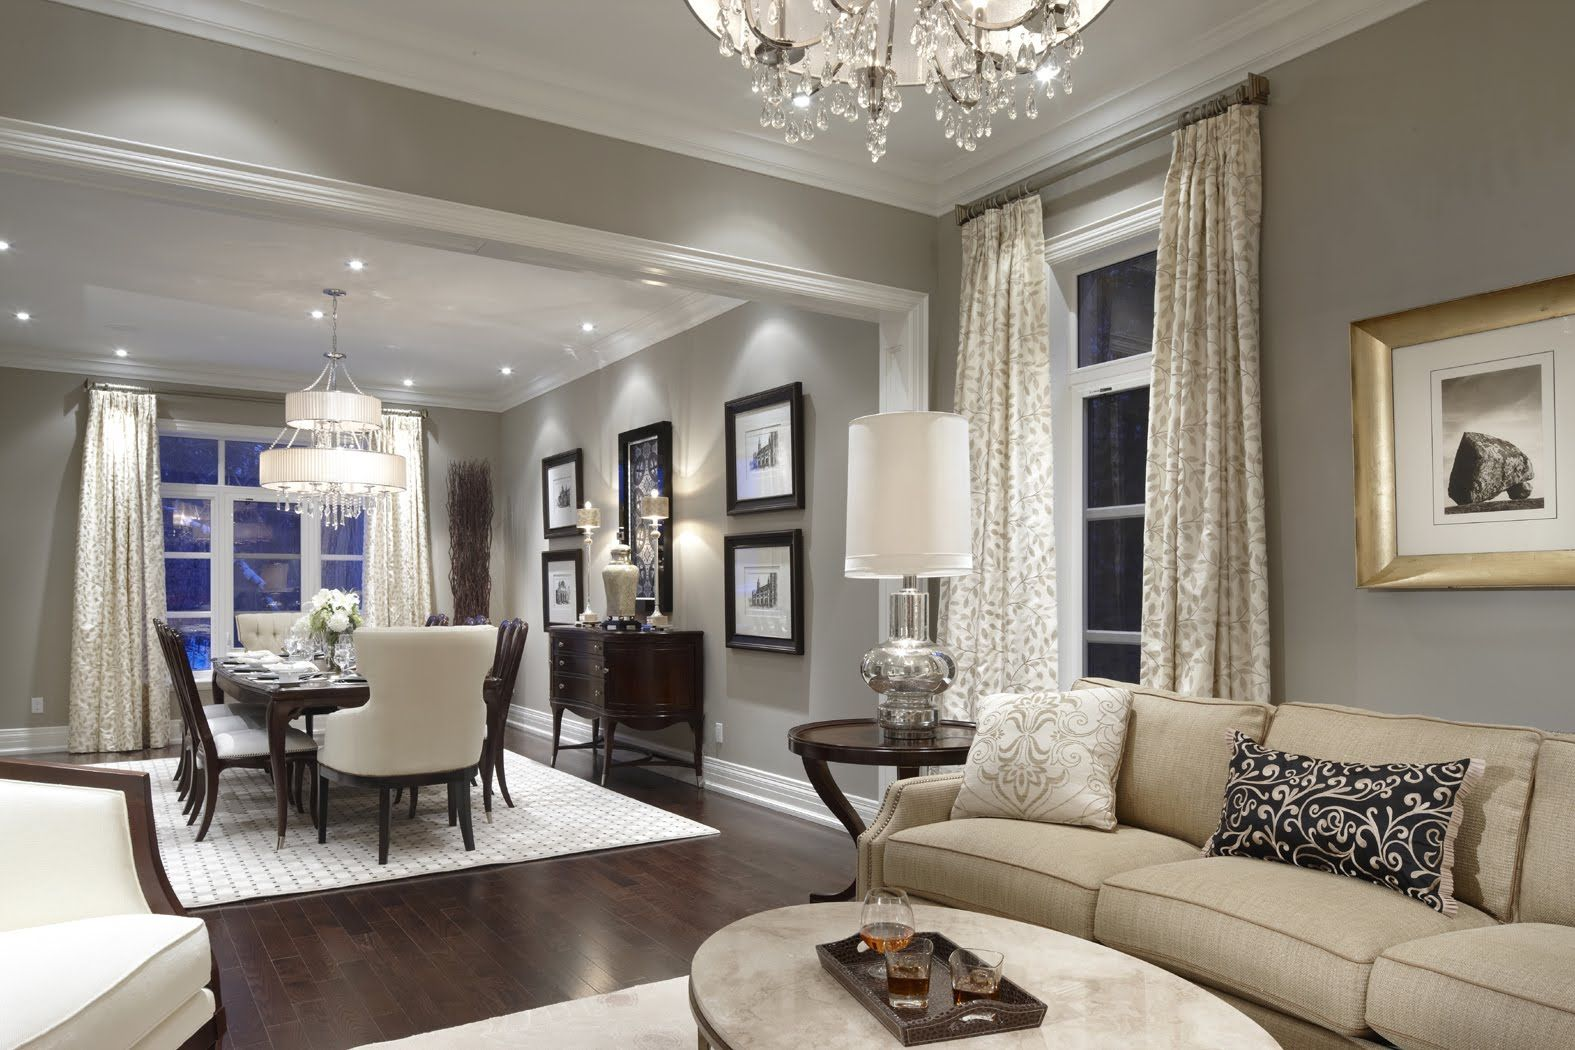 Color Ideas For Living Room With Dark Wood Floors Colonial Style Benjamin Moore Colors Your Decor Livingroom A Traditional Medium Tone Hardwood